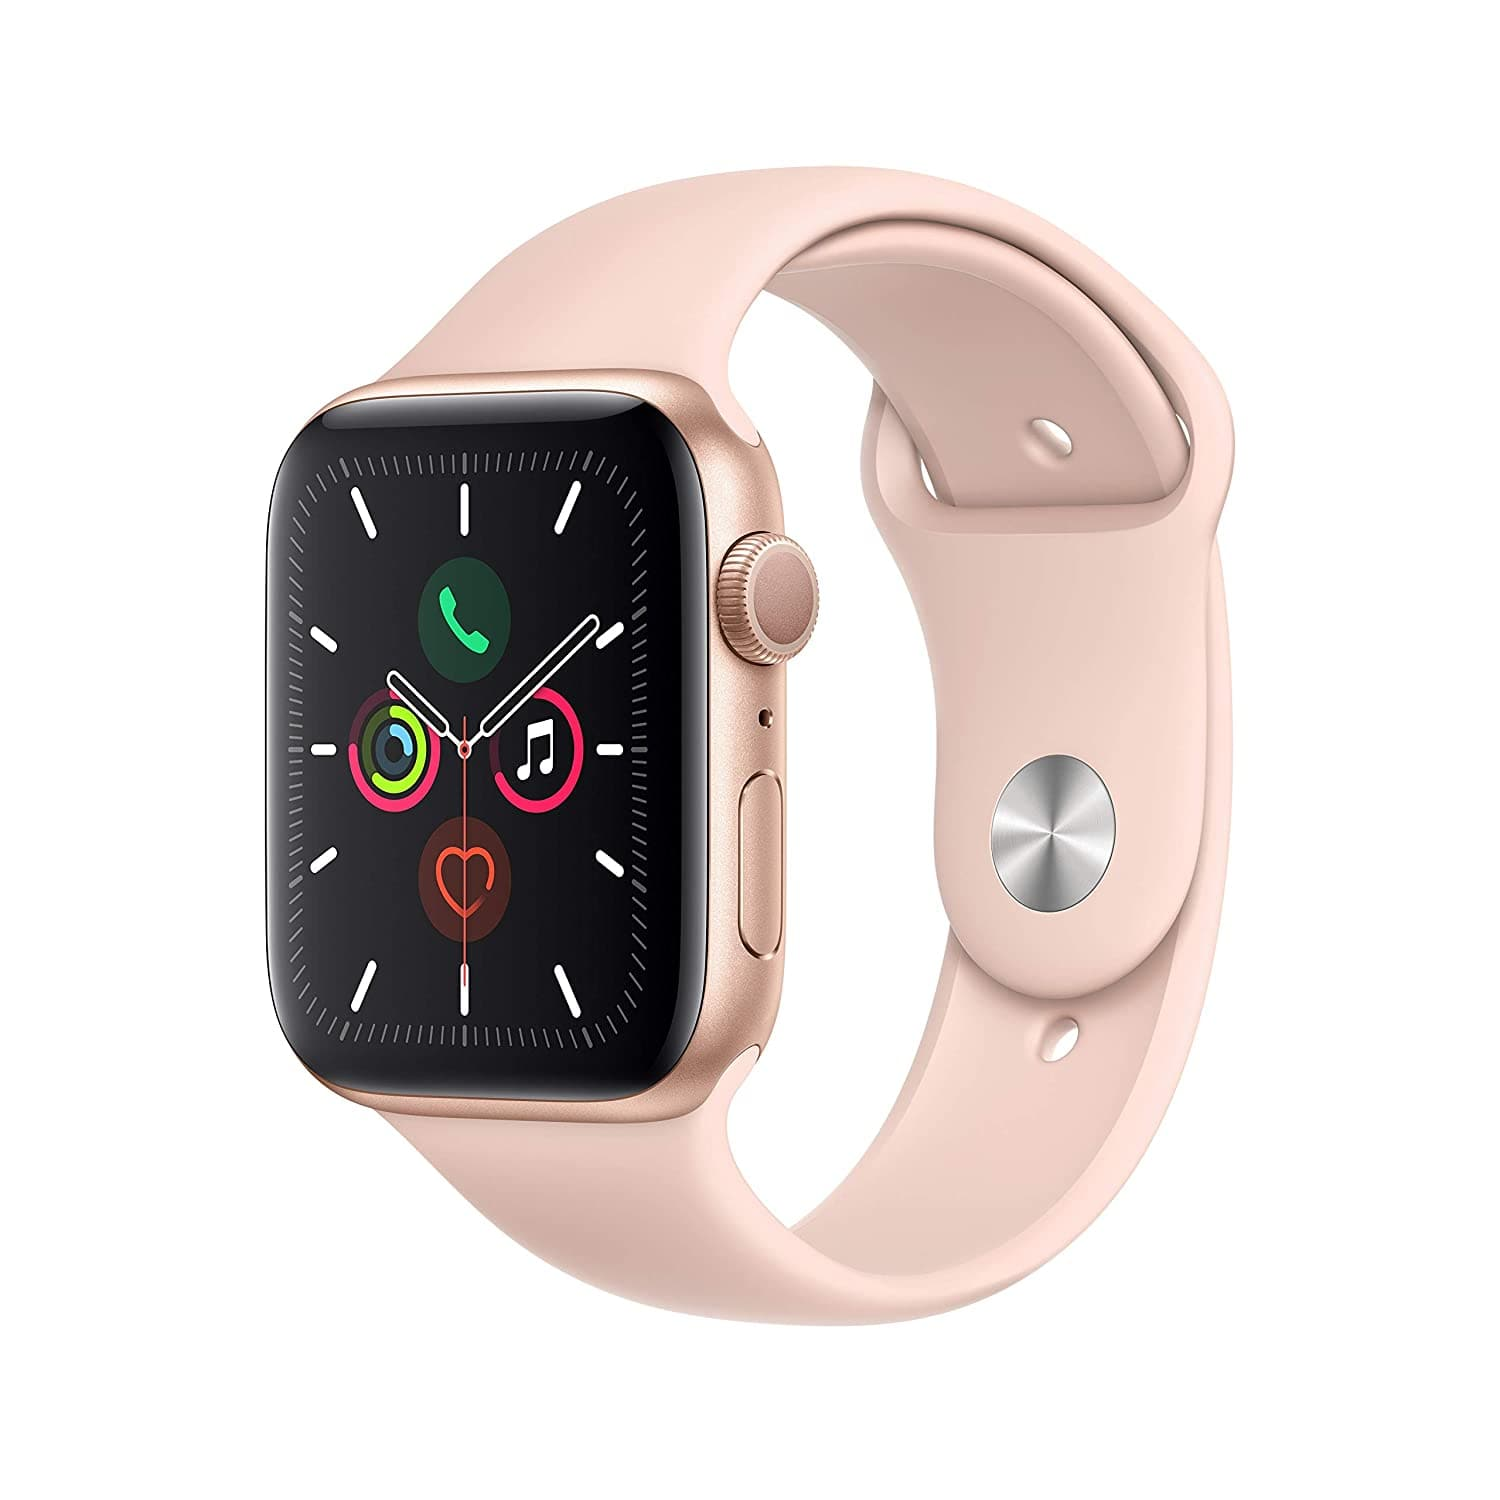 Apple Watch Series 5 (GPS, 44mm) - Gold Aluminum Case with Pink Sport Band $329 @ Amazon